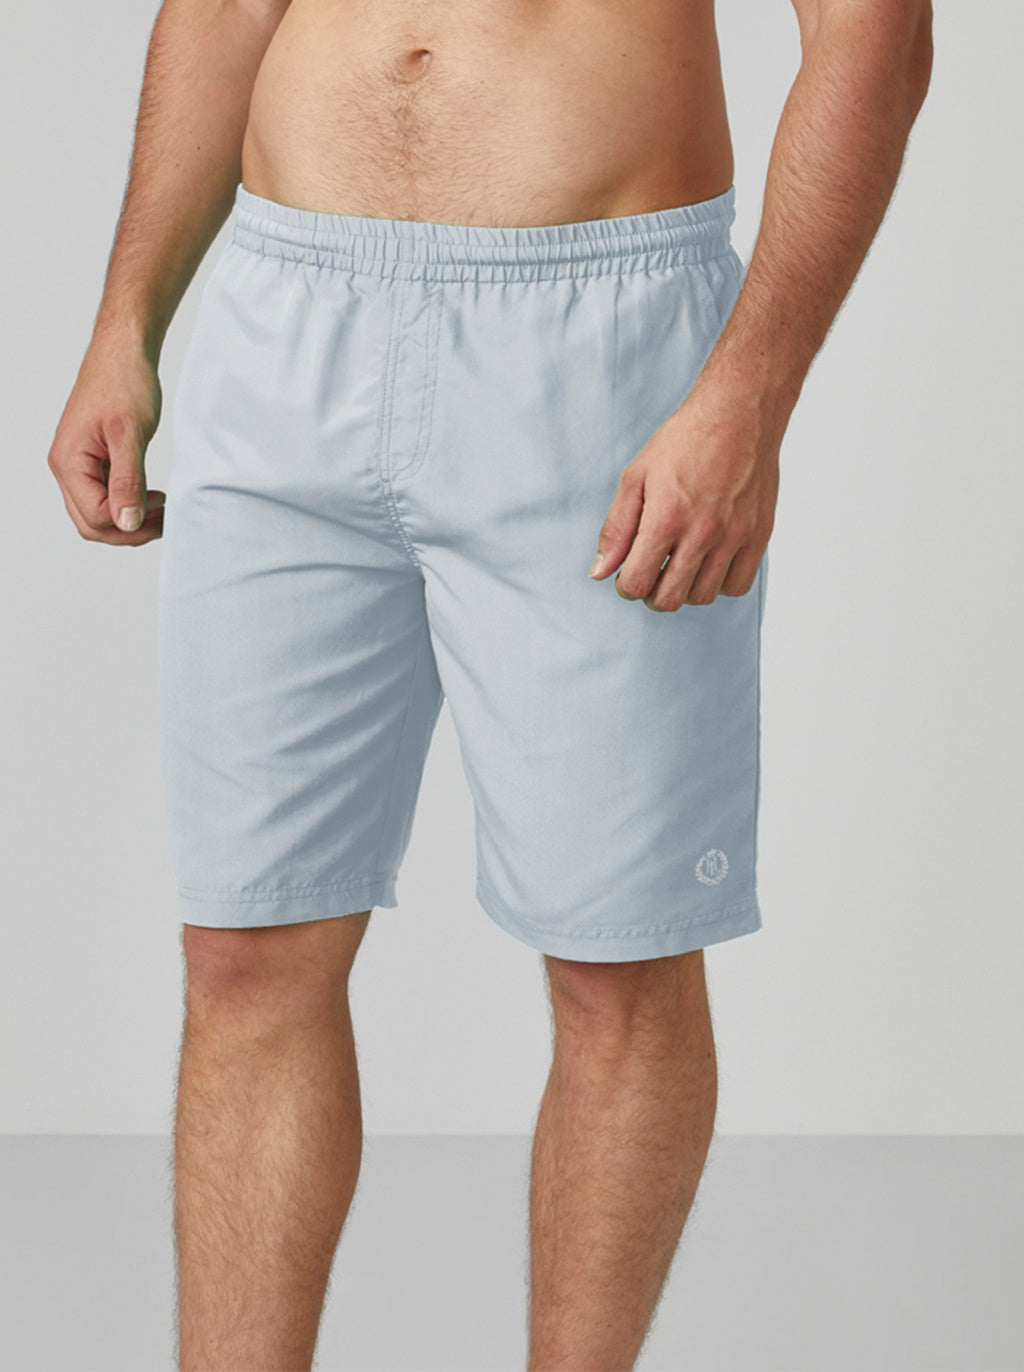 HENRI LLOYD Brixham Longer Length Swim Short